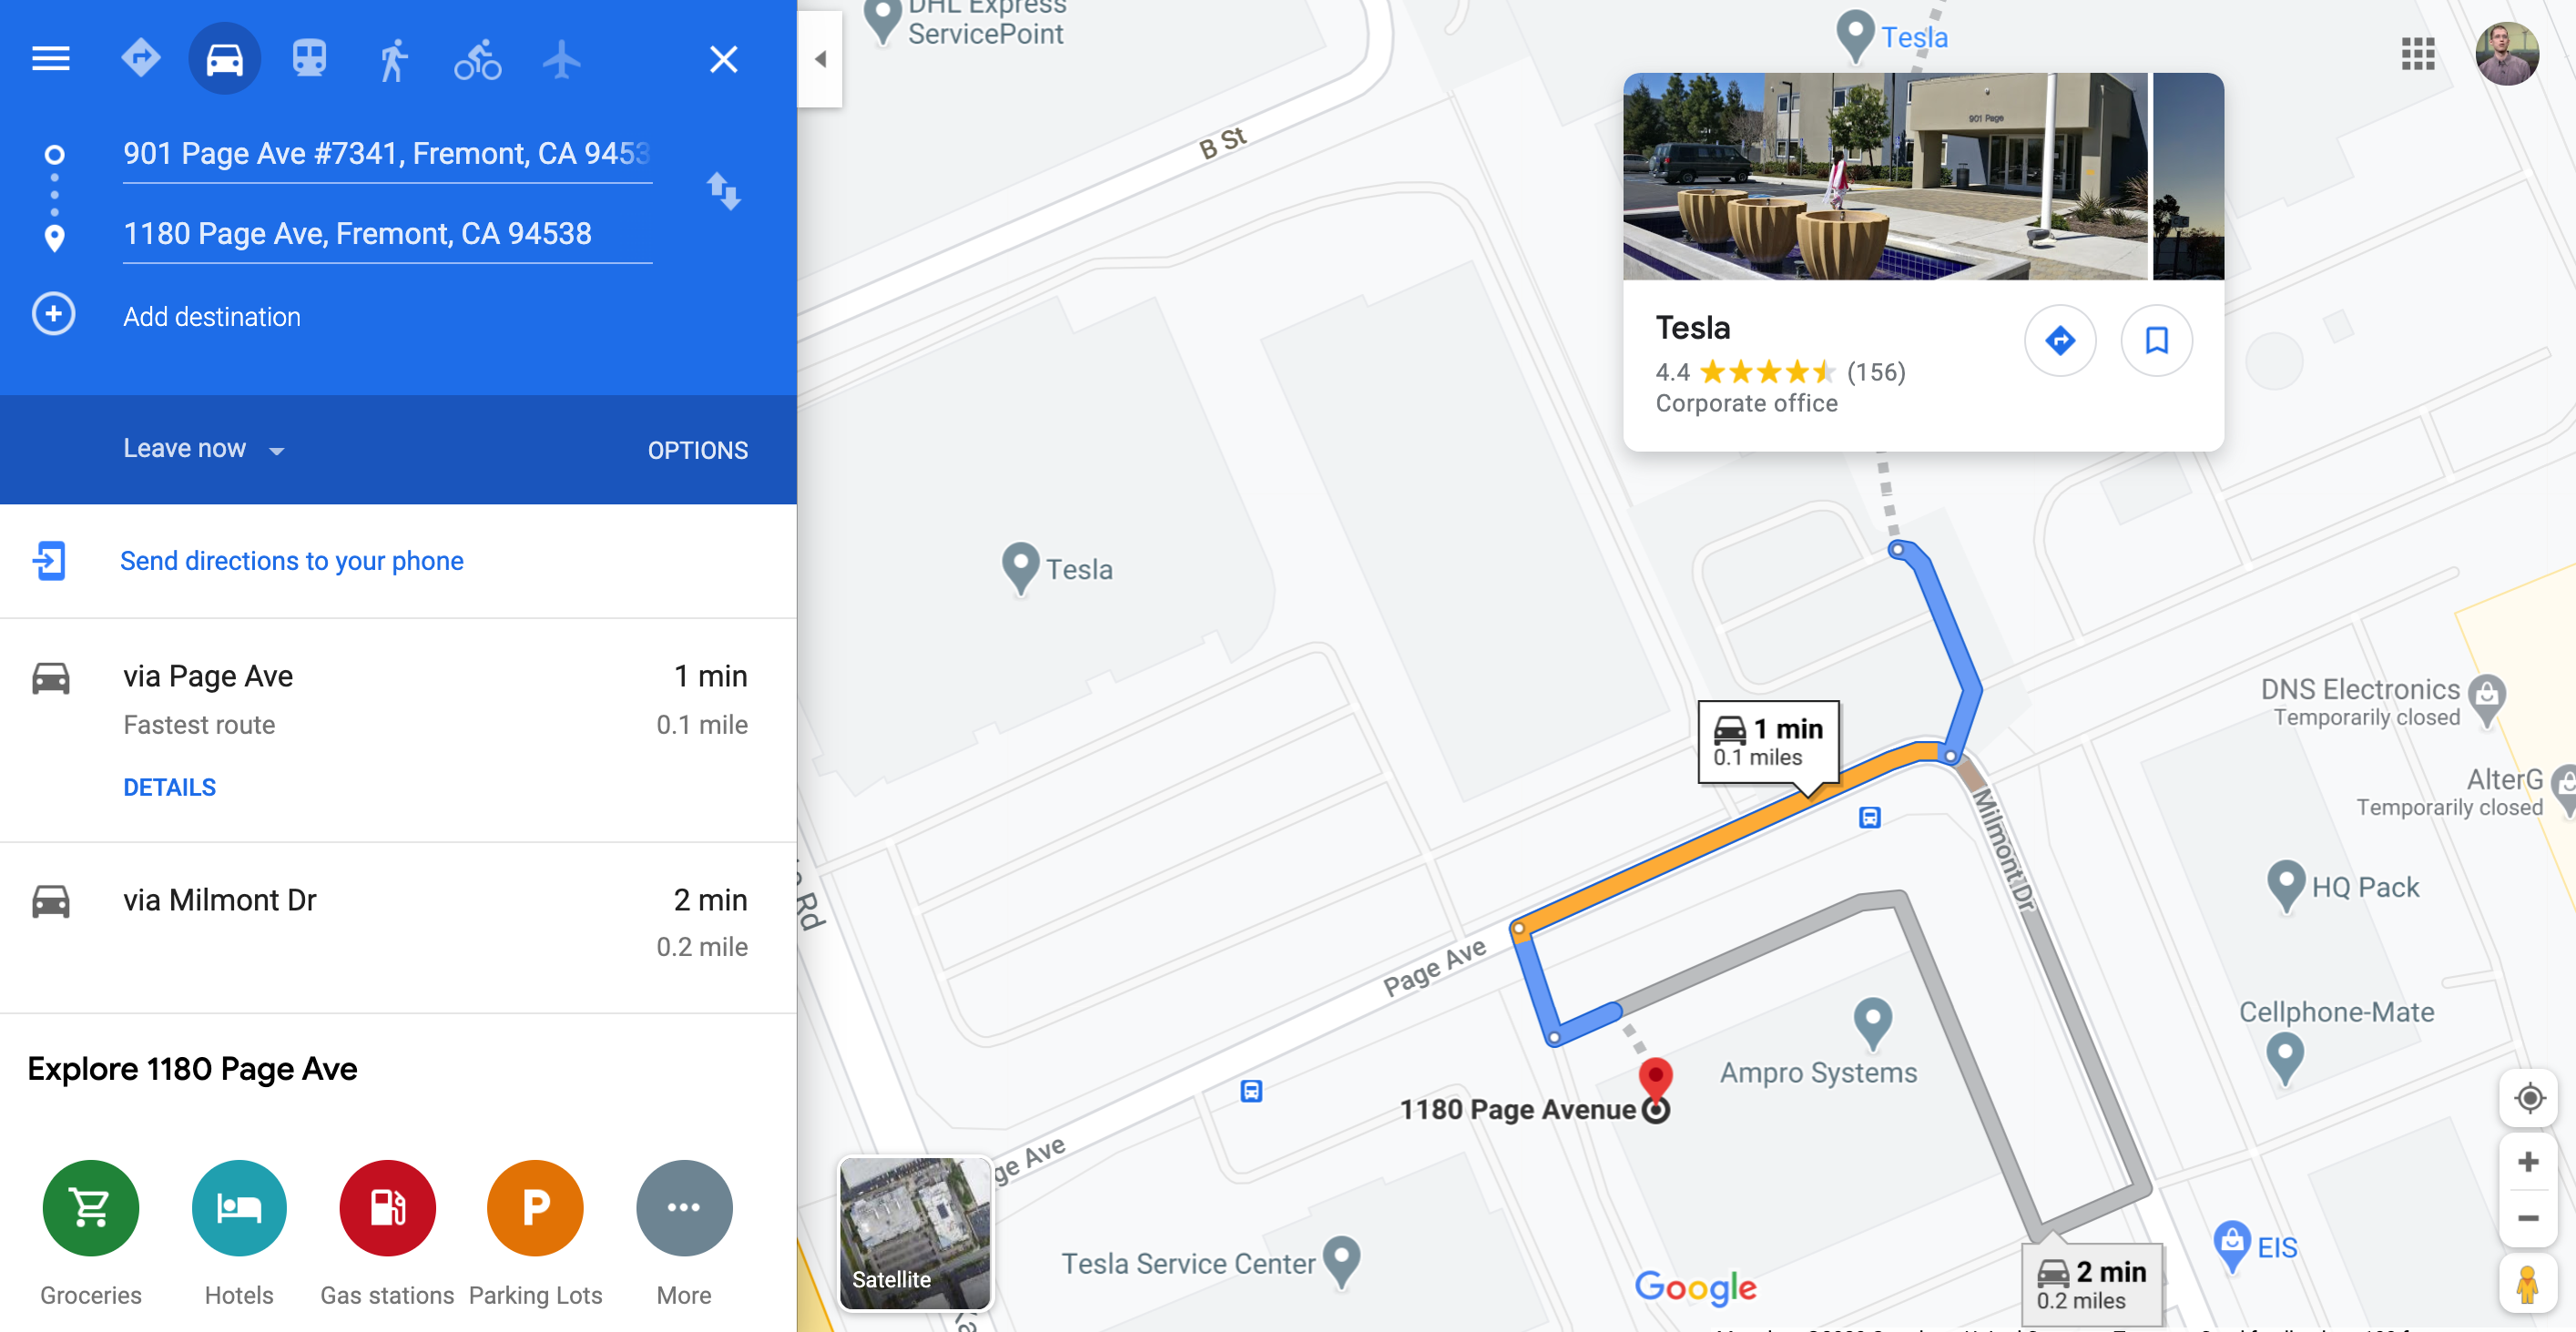 Tesla to Amprius directions in Google Maps